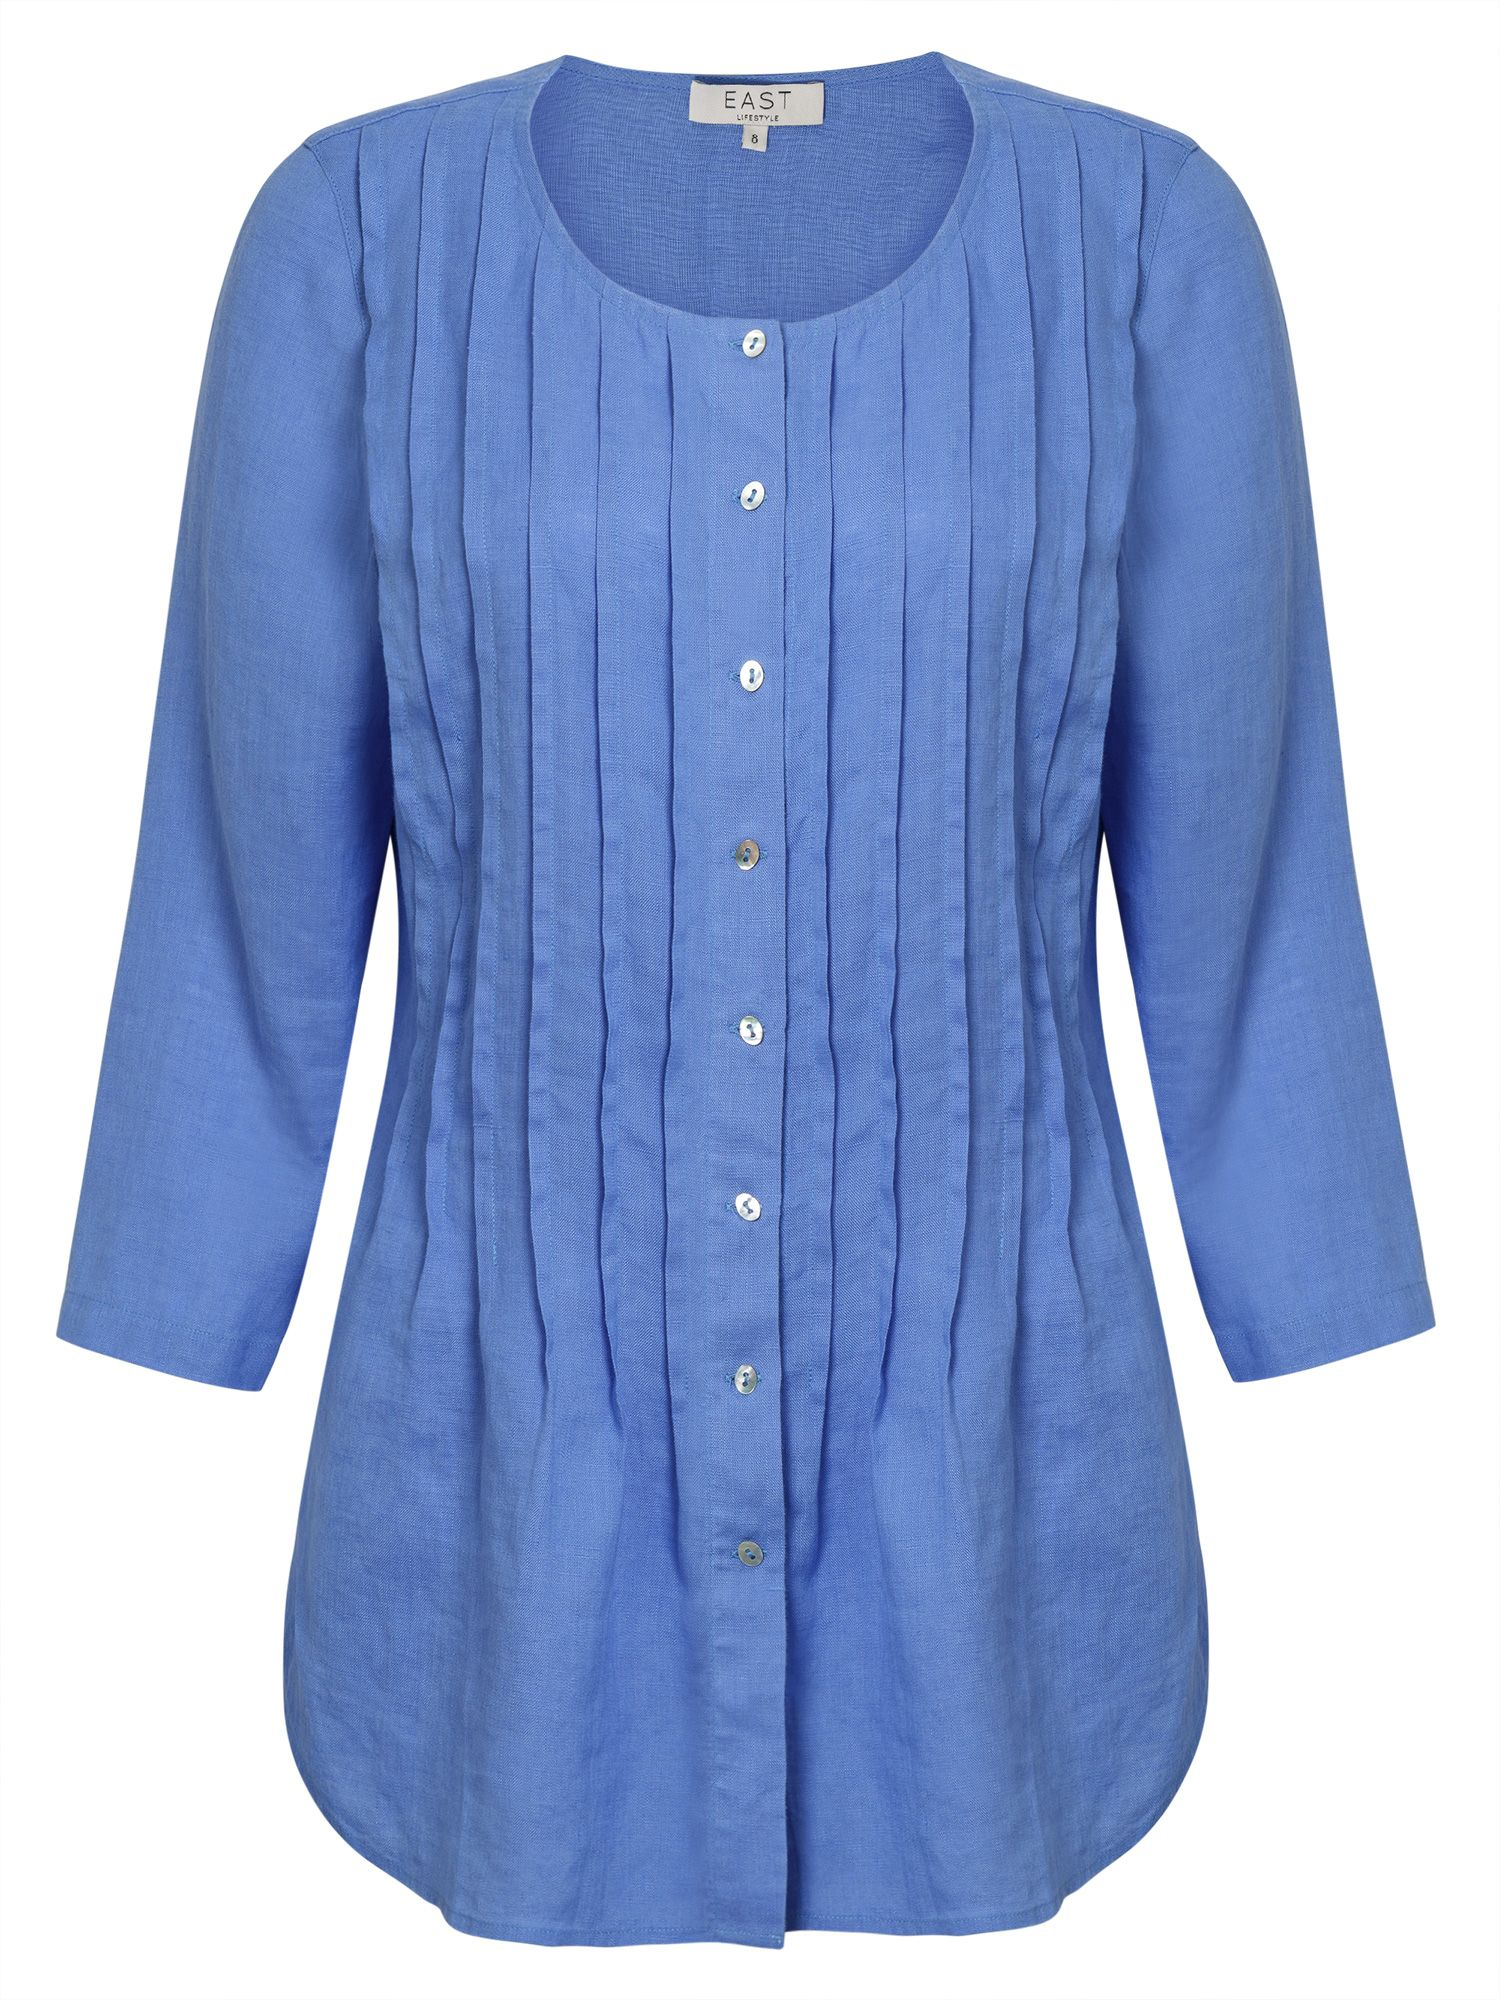 East Pintuck Linen Shirt, Blue